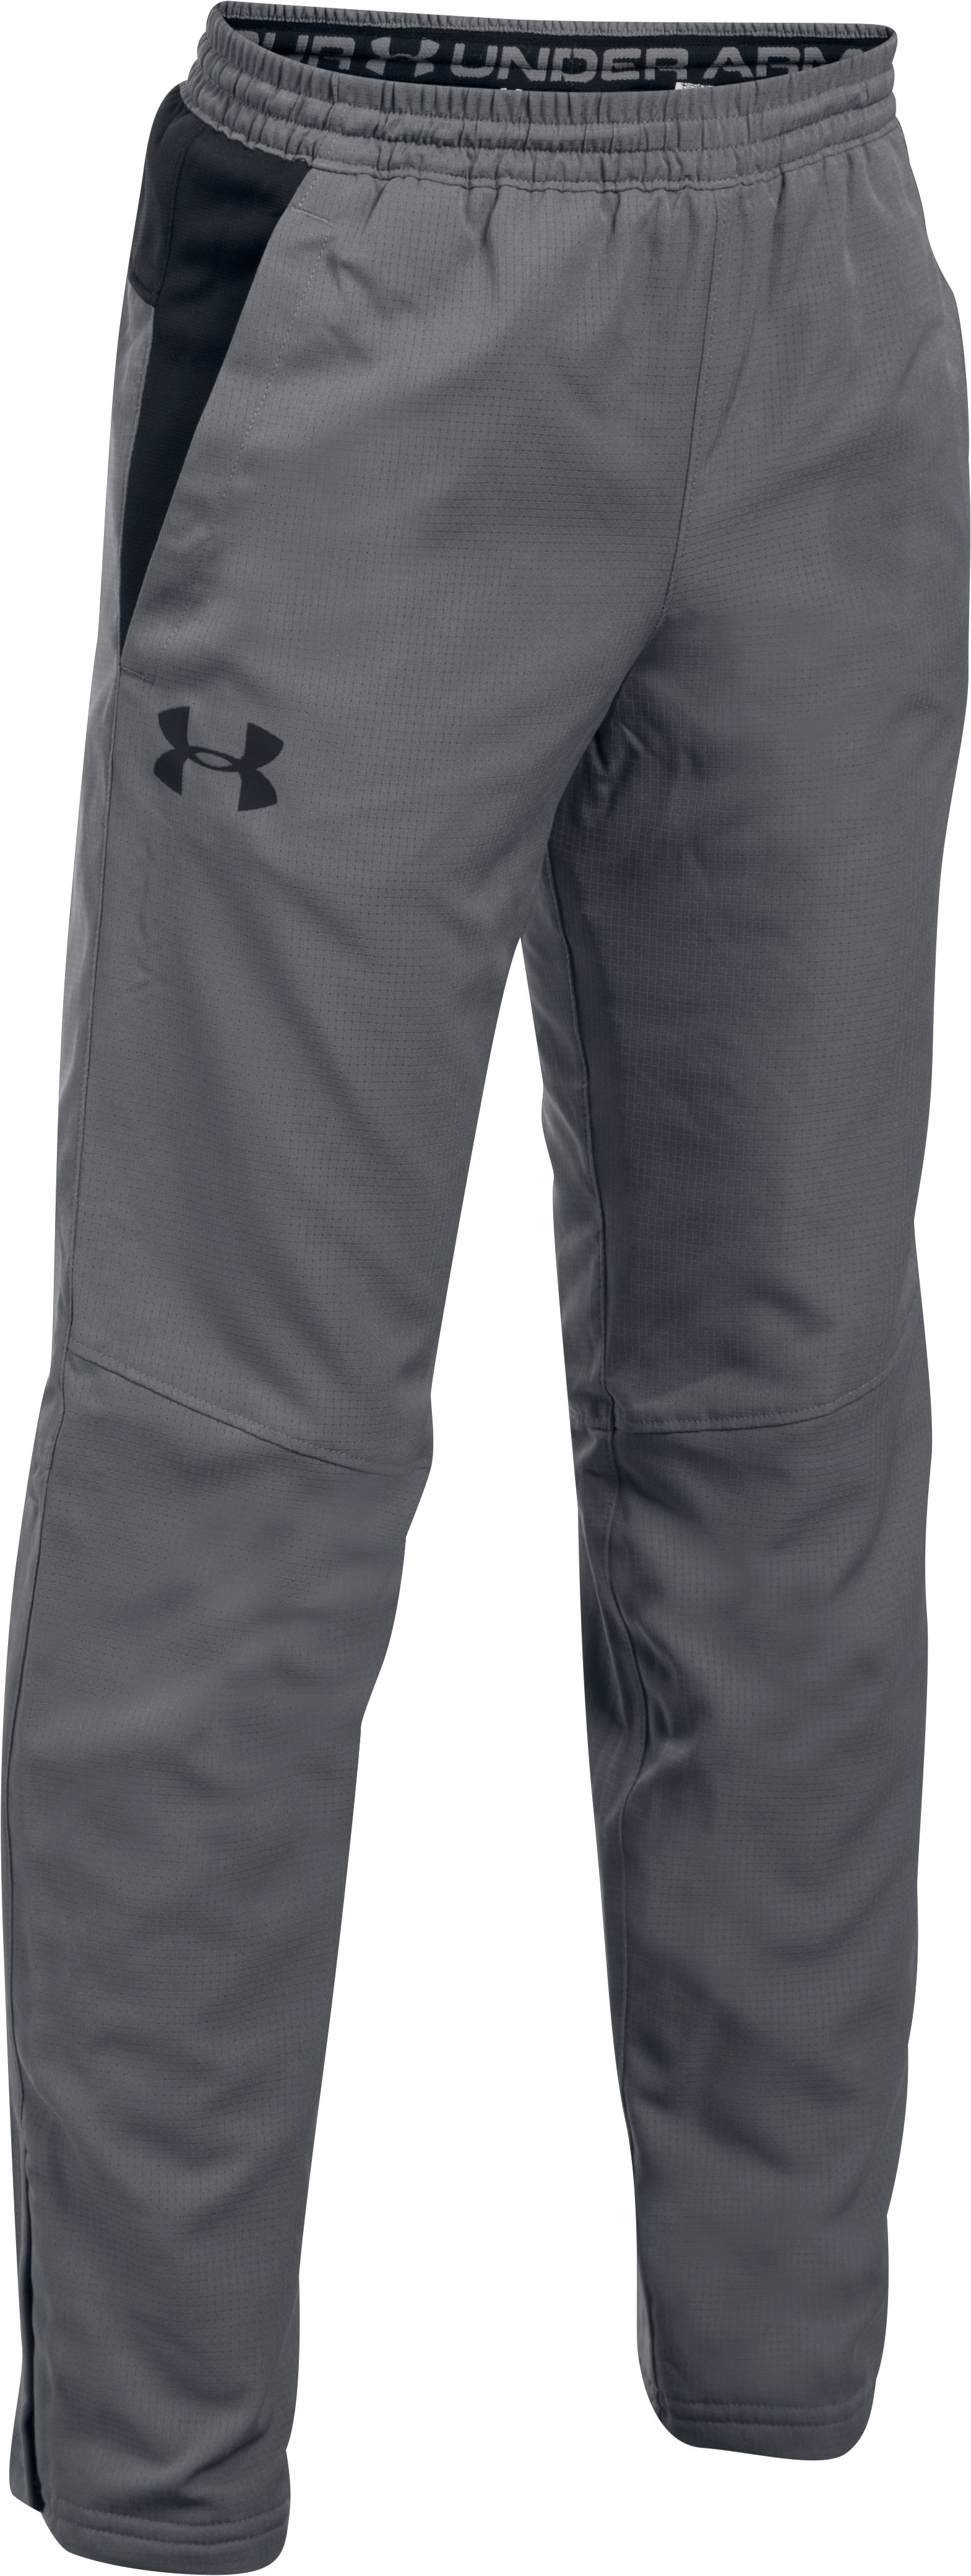 Boys' UA Construckt ColdGear® Reactor Pants, Graphite